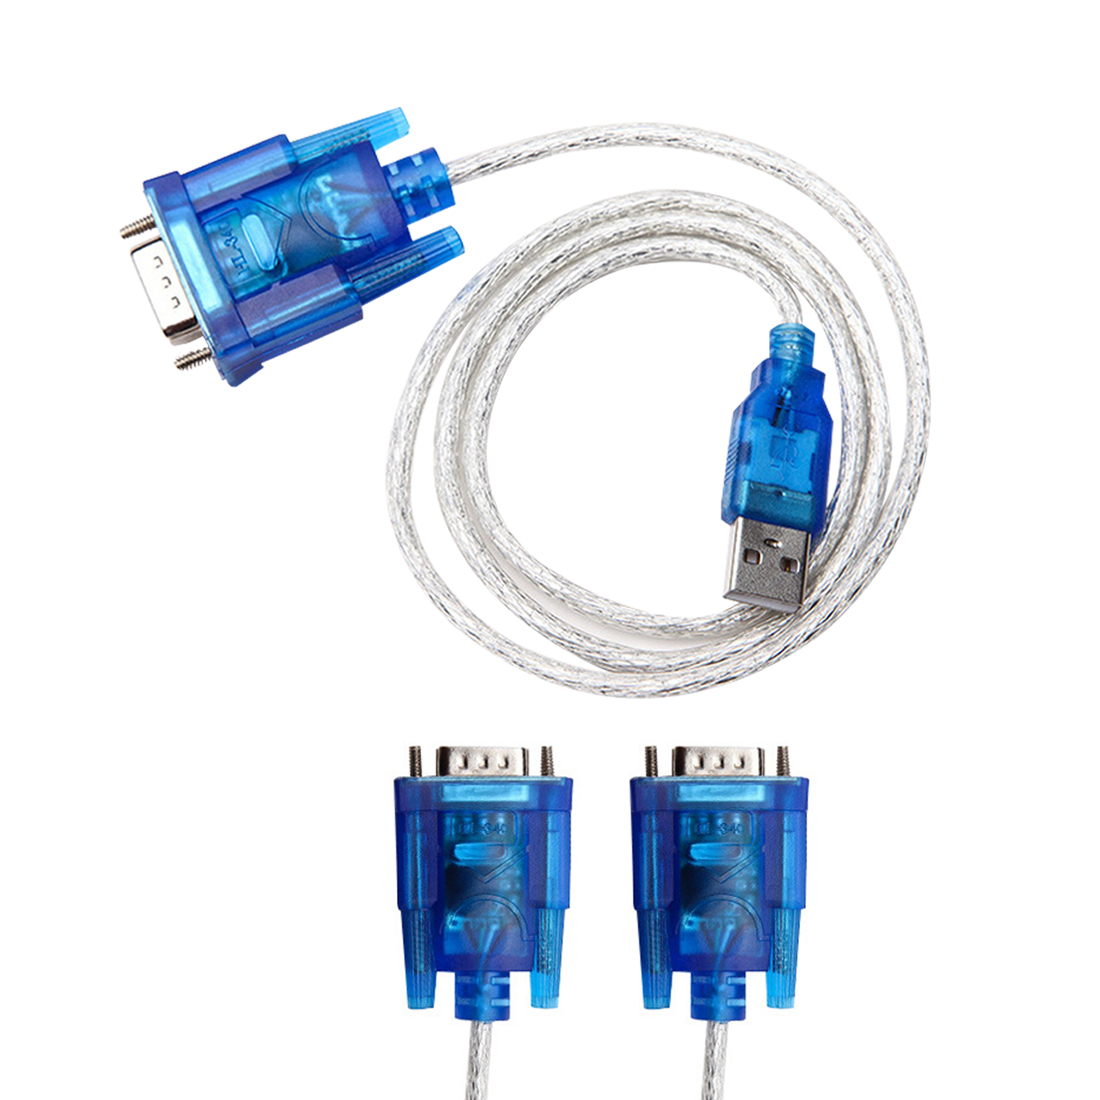 Marsnaska Hot Selling 1PC 80cm USB 2.0 to RS232 COM Port Serial PDA 9 pin DB9 Cable Male to Male M/M Adapter for PC PDA GPS new 1 5m serial rs232 9 pin male to female db9 9 pin pc converter extension cable